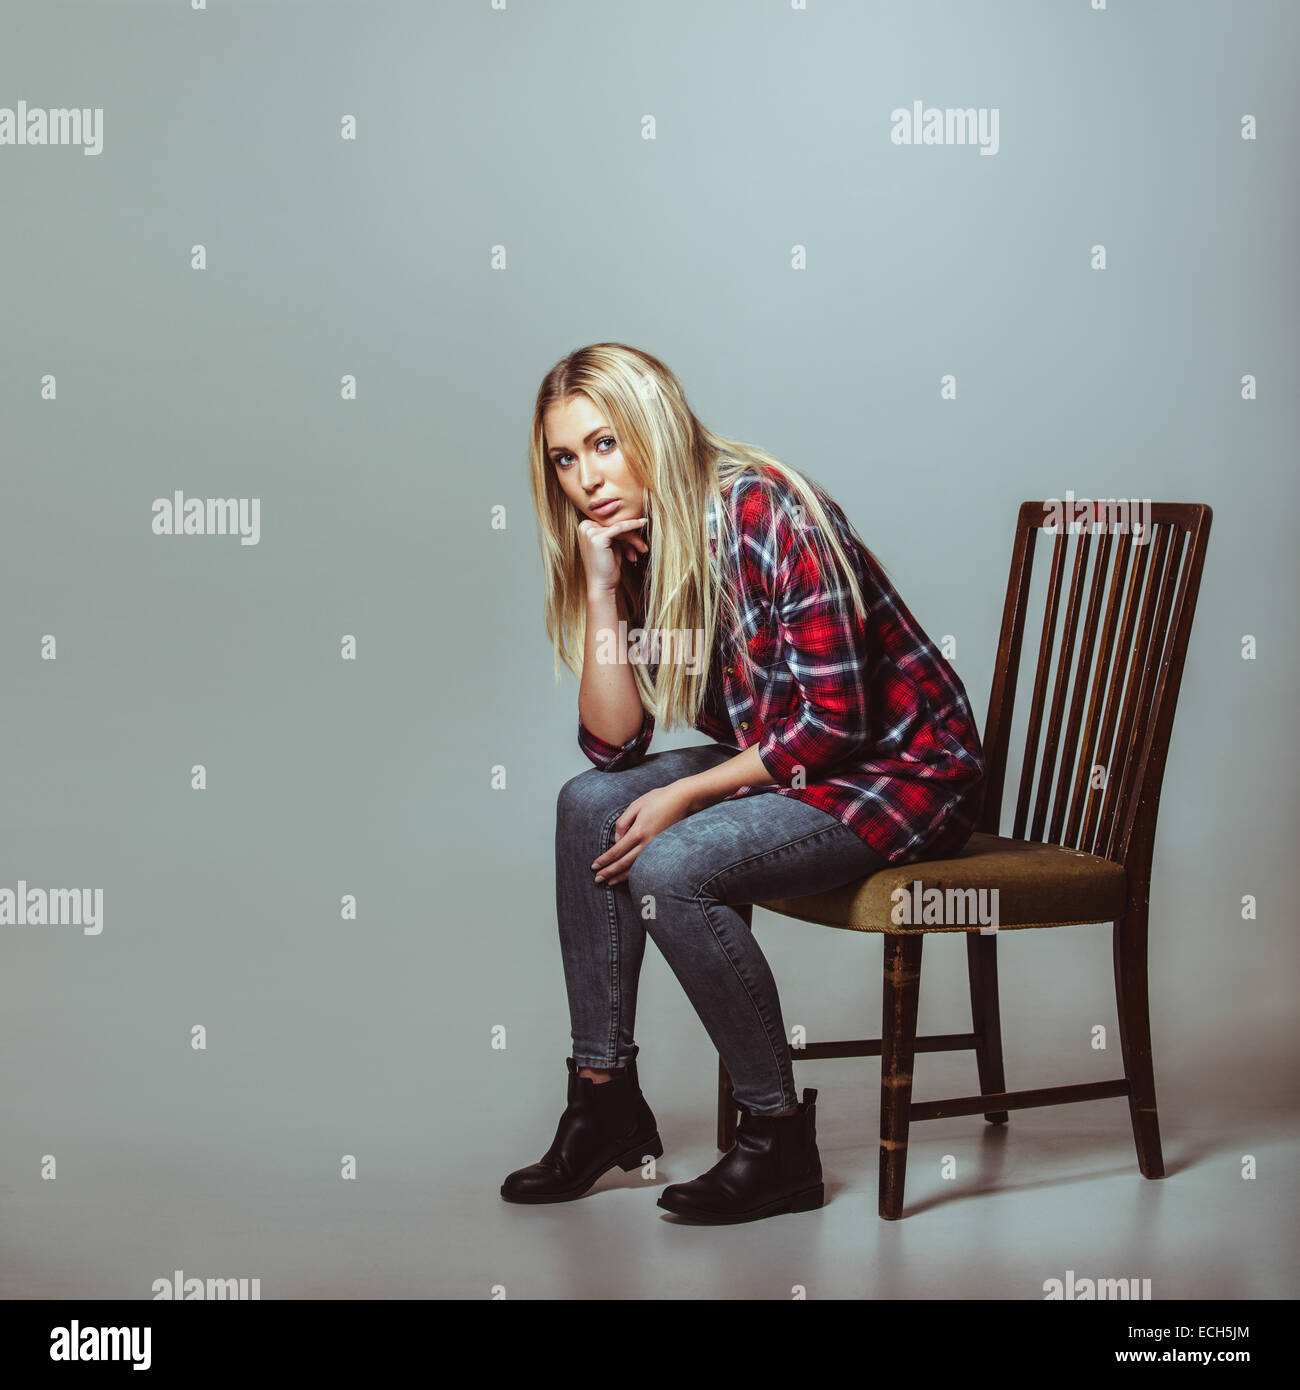 Studio shot of young woman in casual outfit sitting on chair looking at camera. Caucasian female model with copyspace. - Stock Image